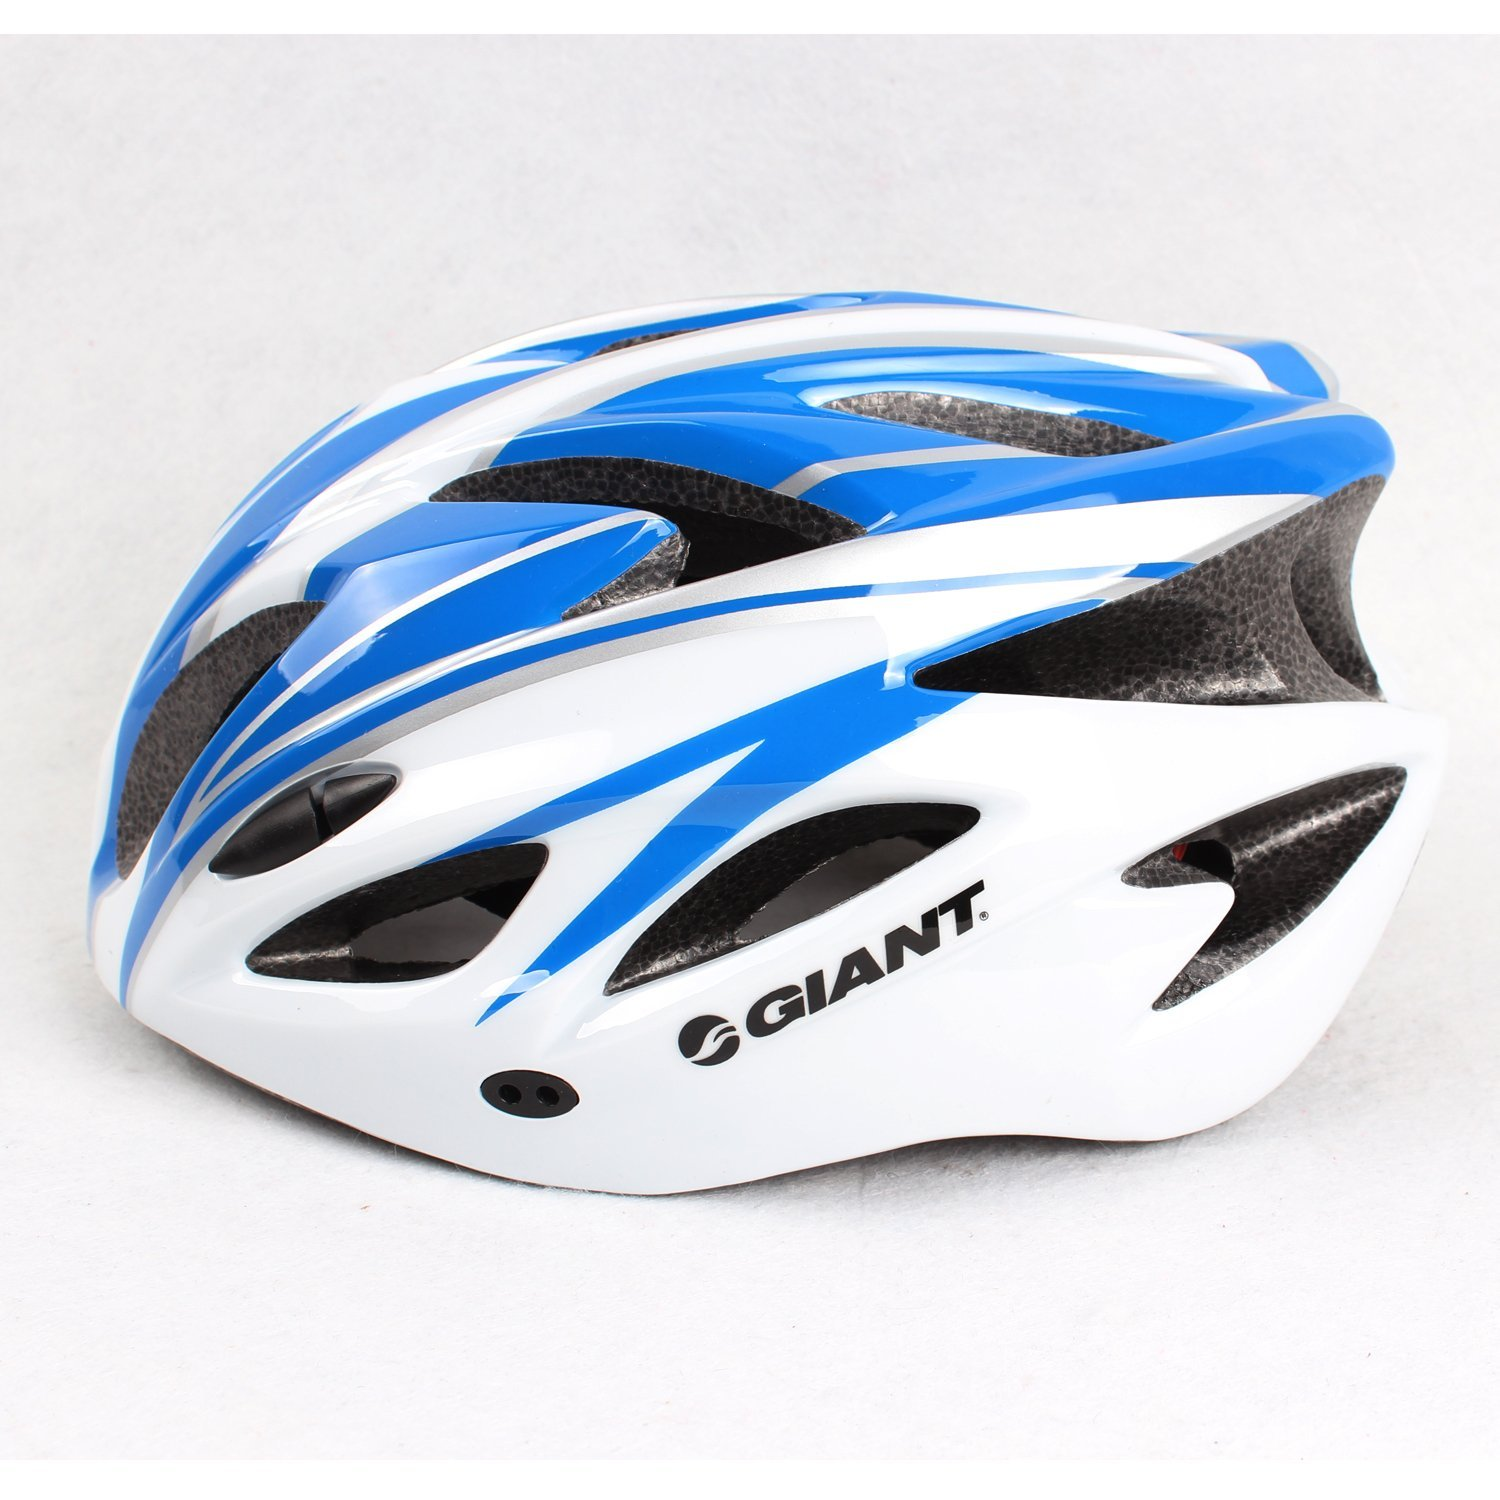 Mosso Bicycle Helmets